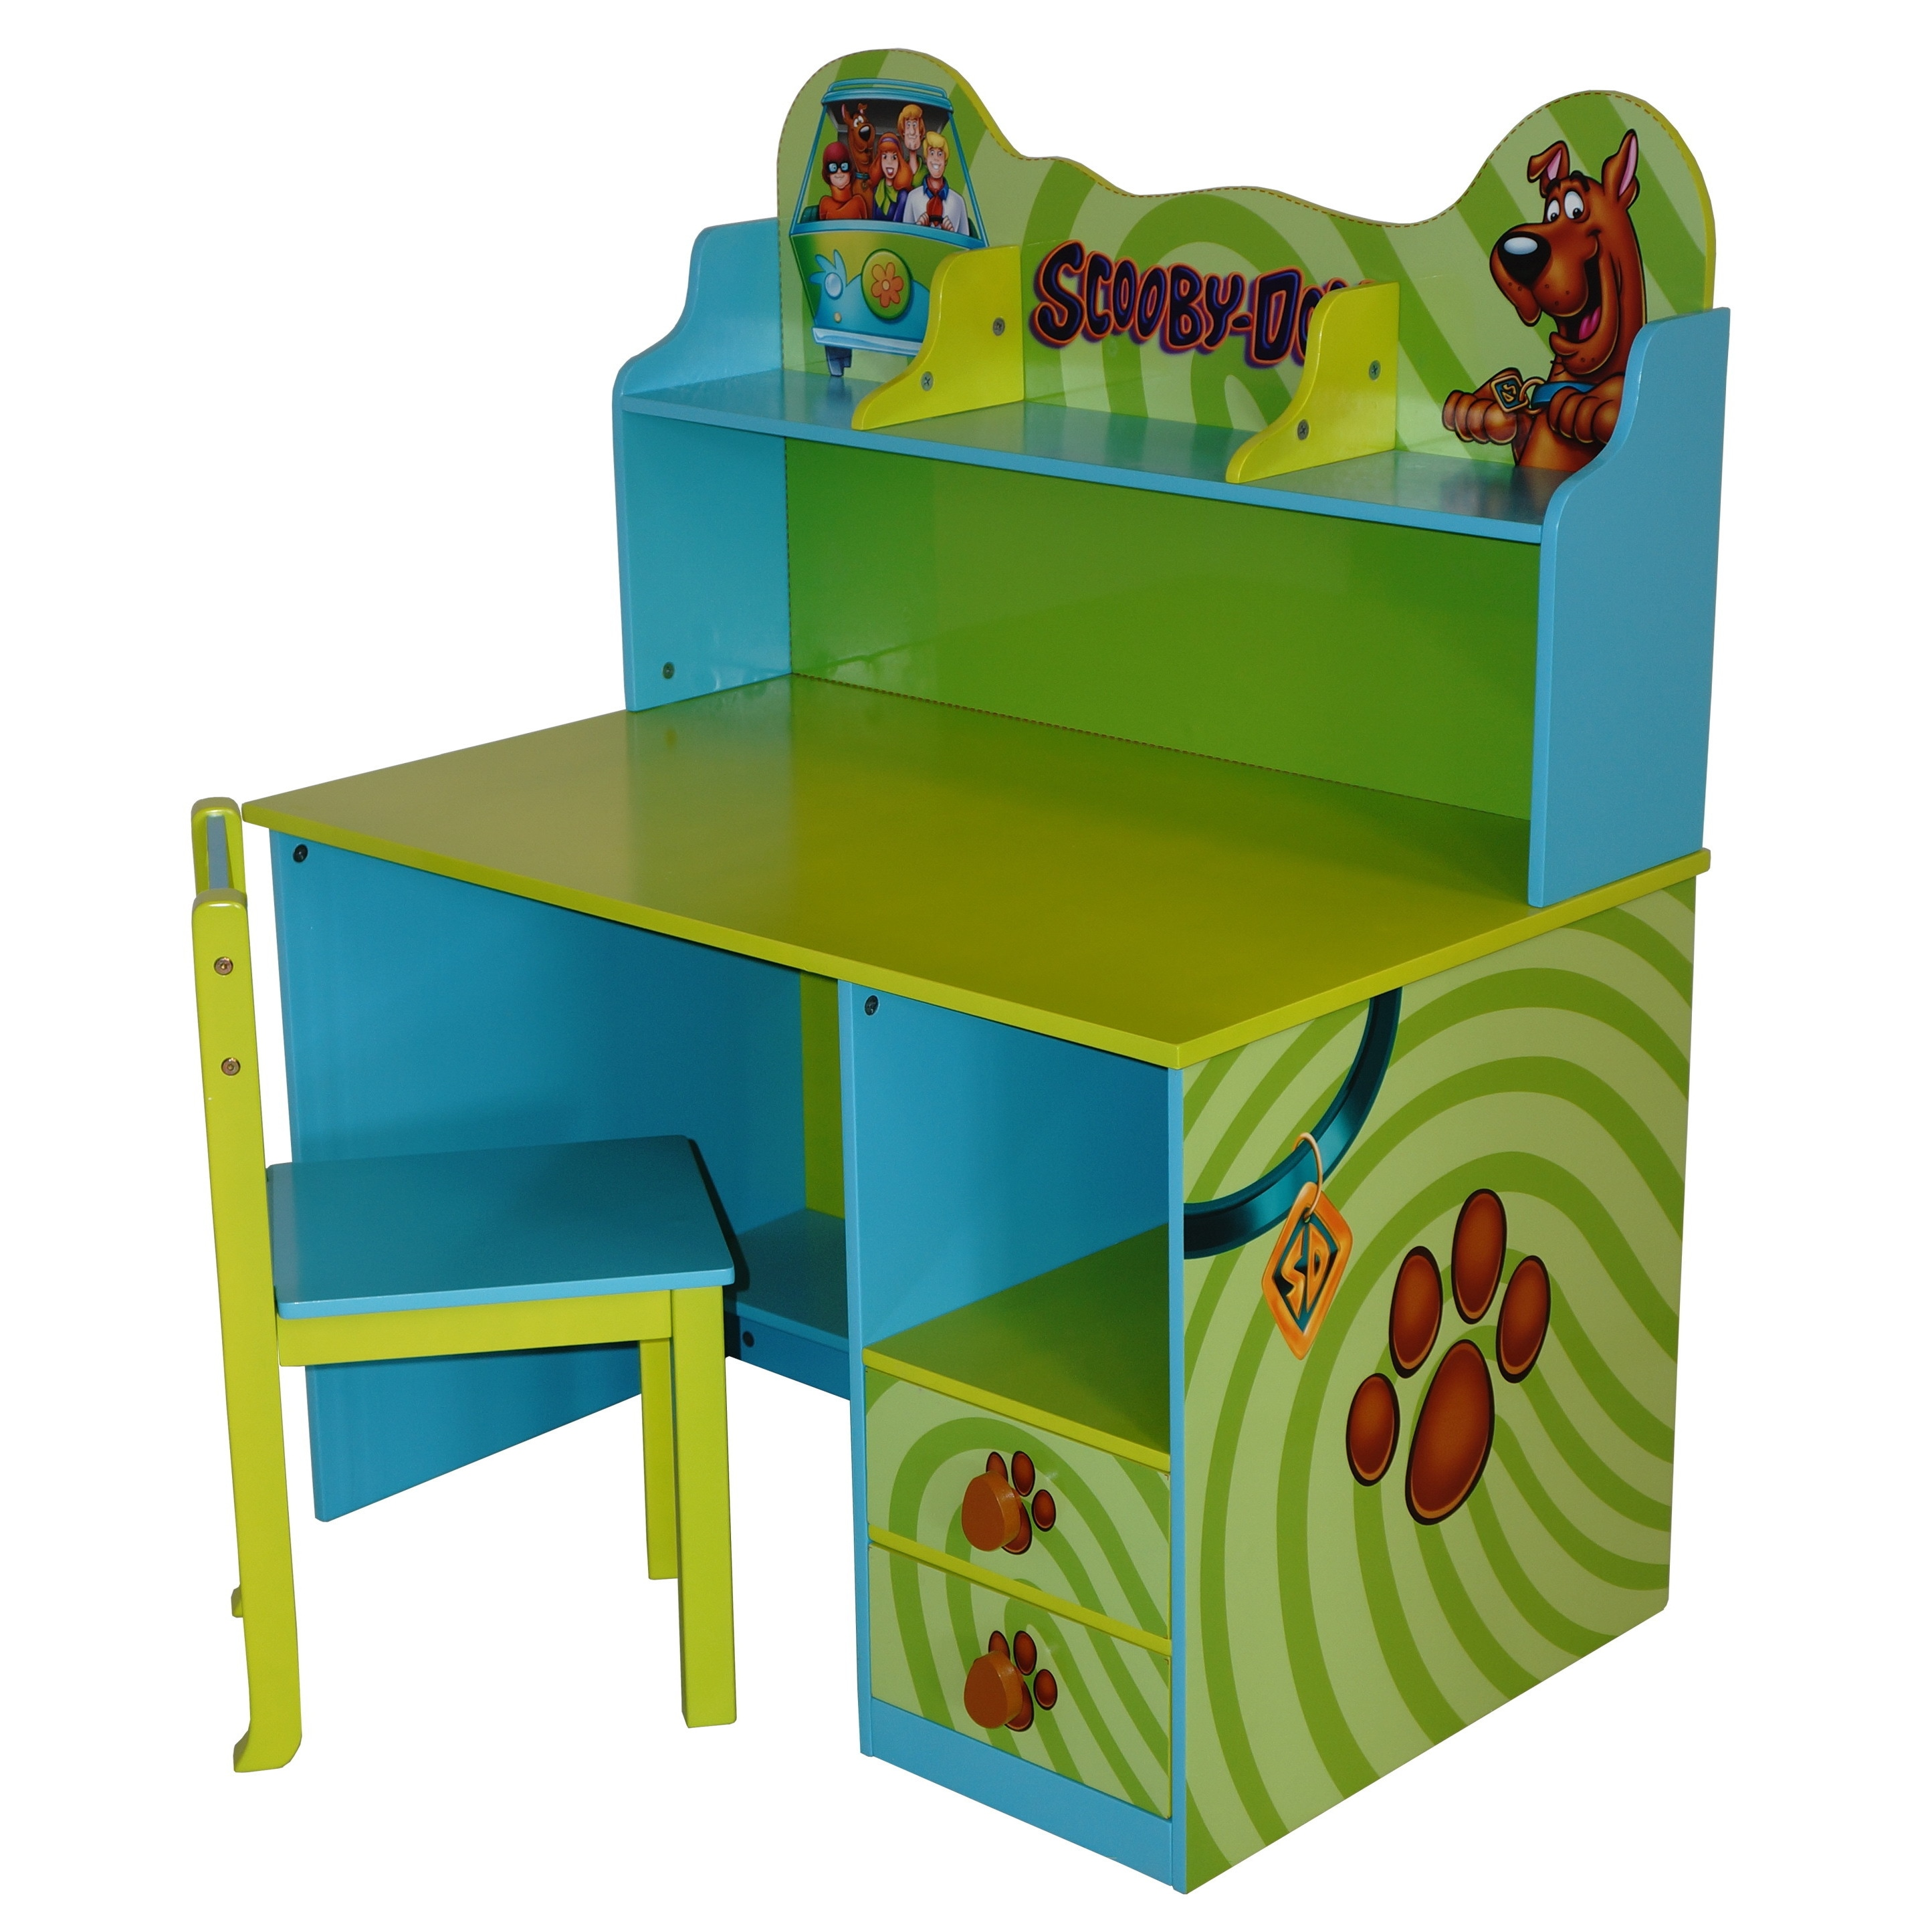 scooby doo chair royal throne chairs for sale o 39kids kids 39 green mdf writing desk and